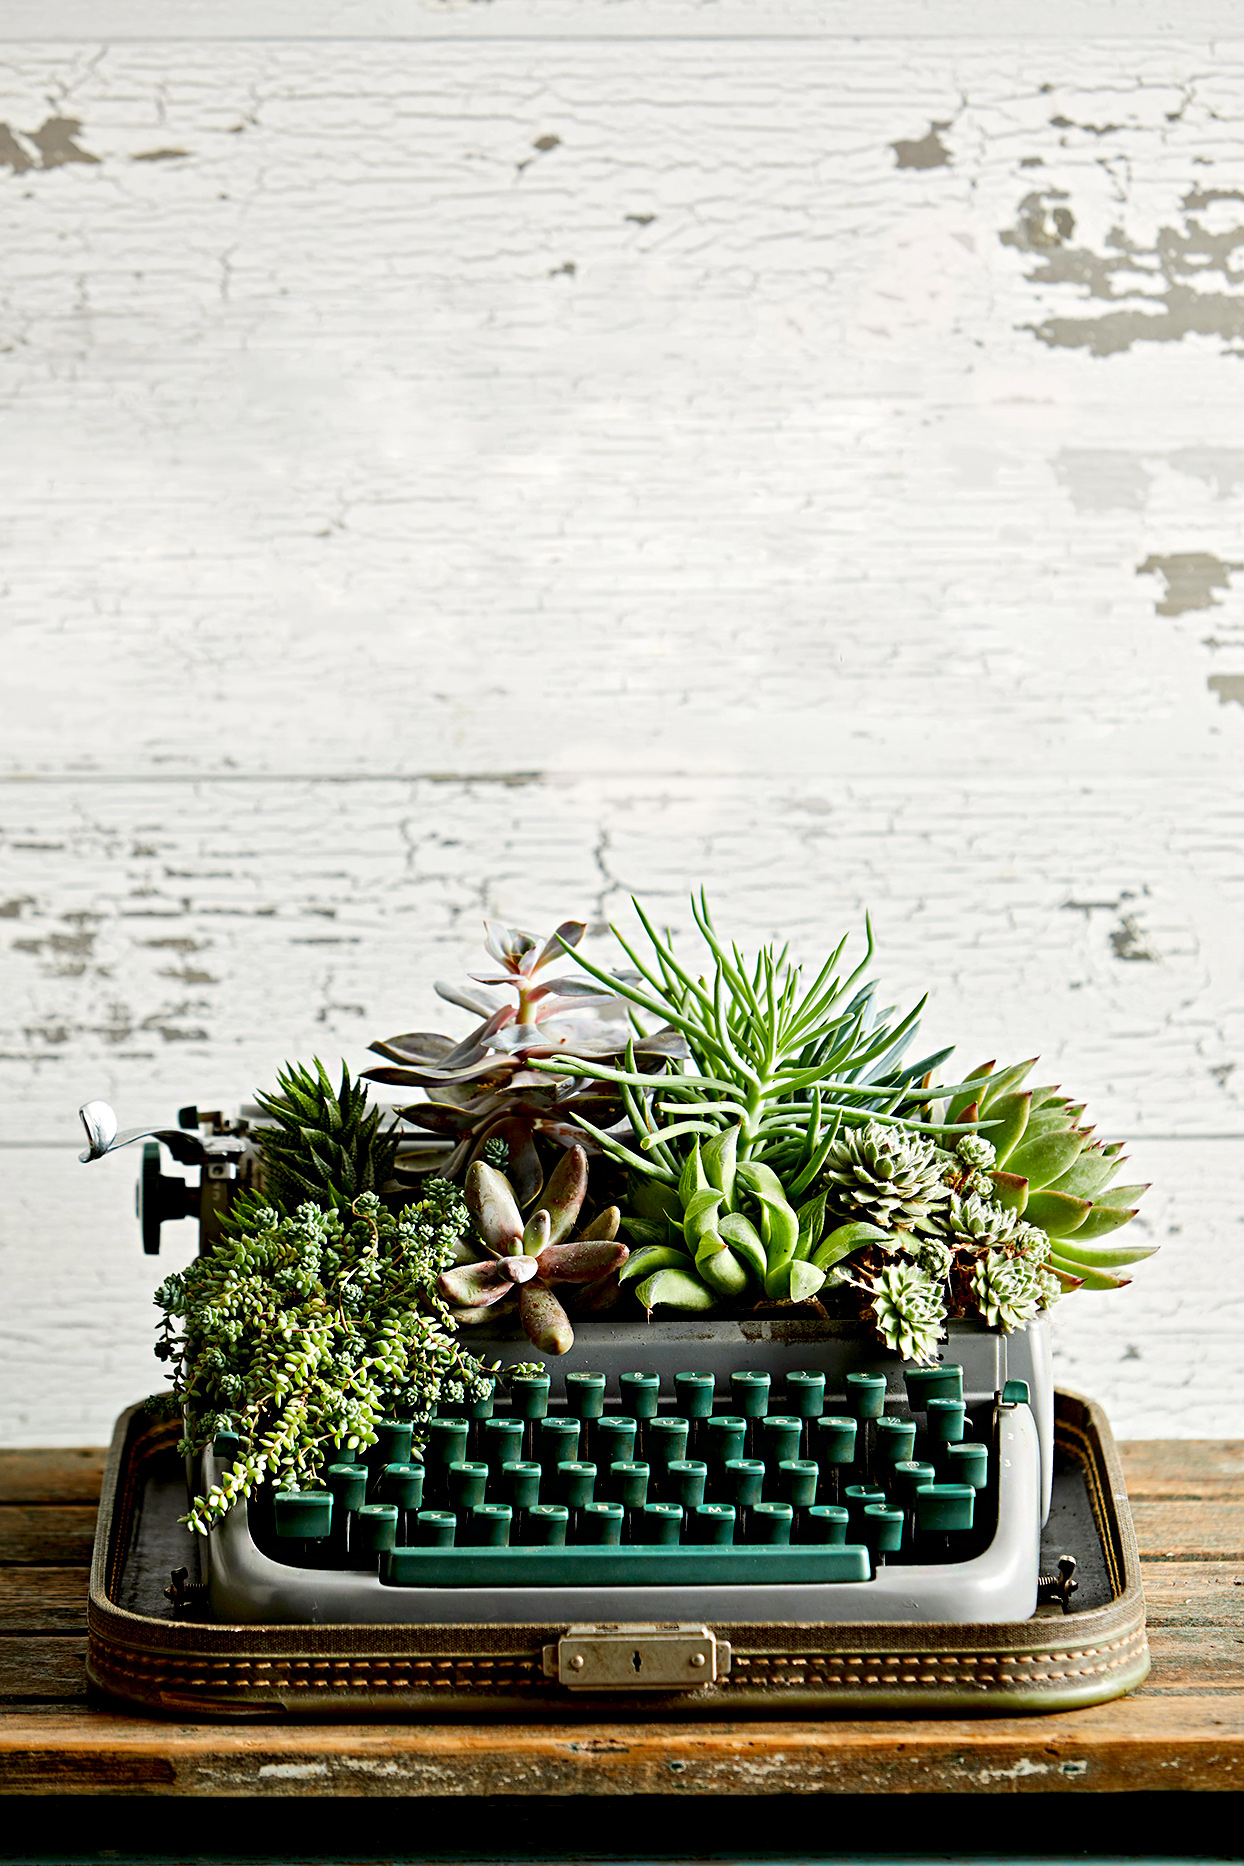 Vintage typewriter used as succulent planter